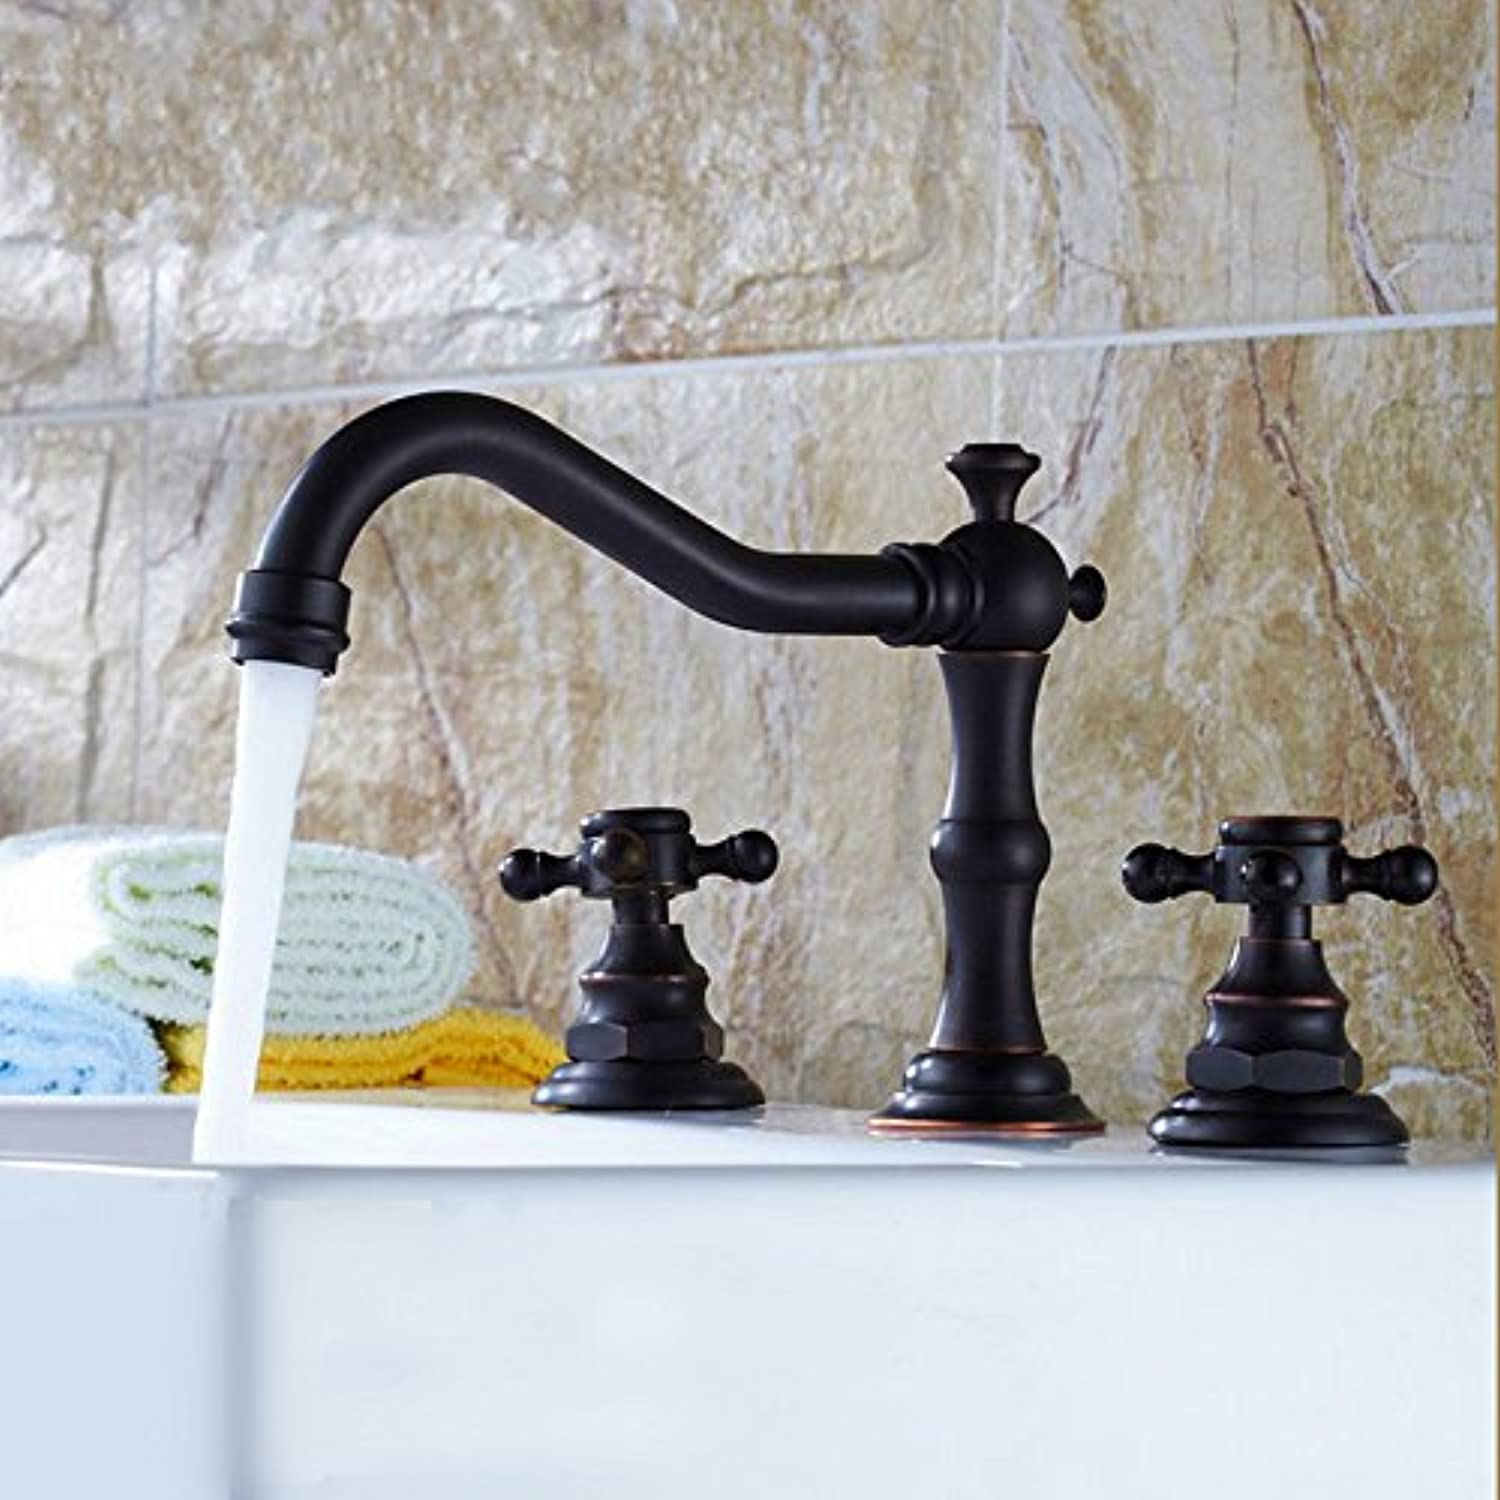 Jiedoasi Contemporary Brass Bathroom Basin Faucet Mixer Tap Oil Rubbed Bronze Two Handle Hole